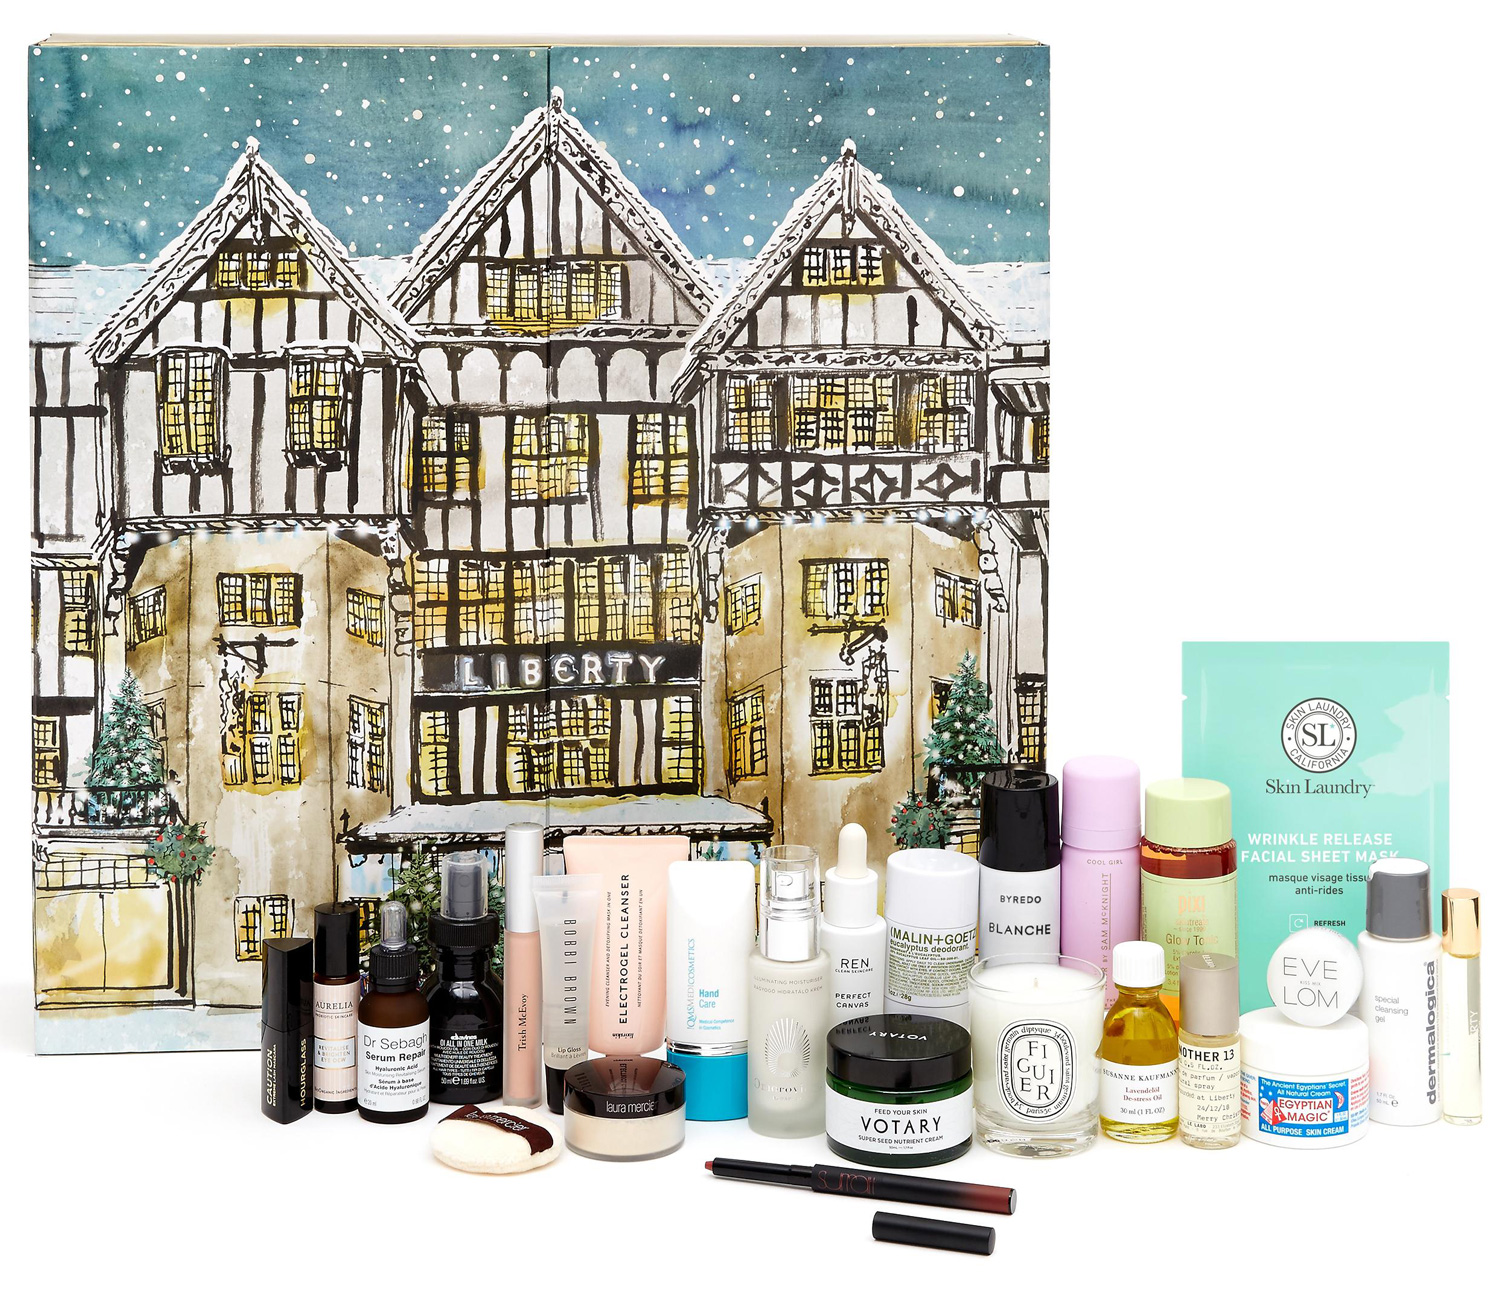 liberty-london-advent-calendar-2018-beautyisunique